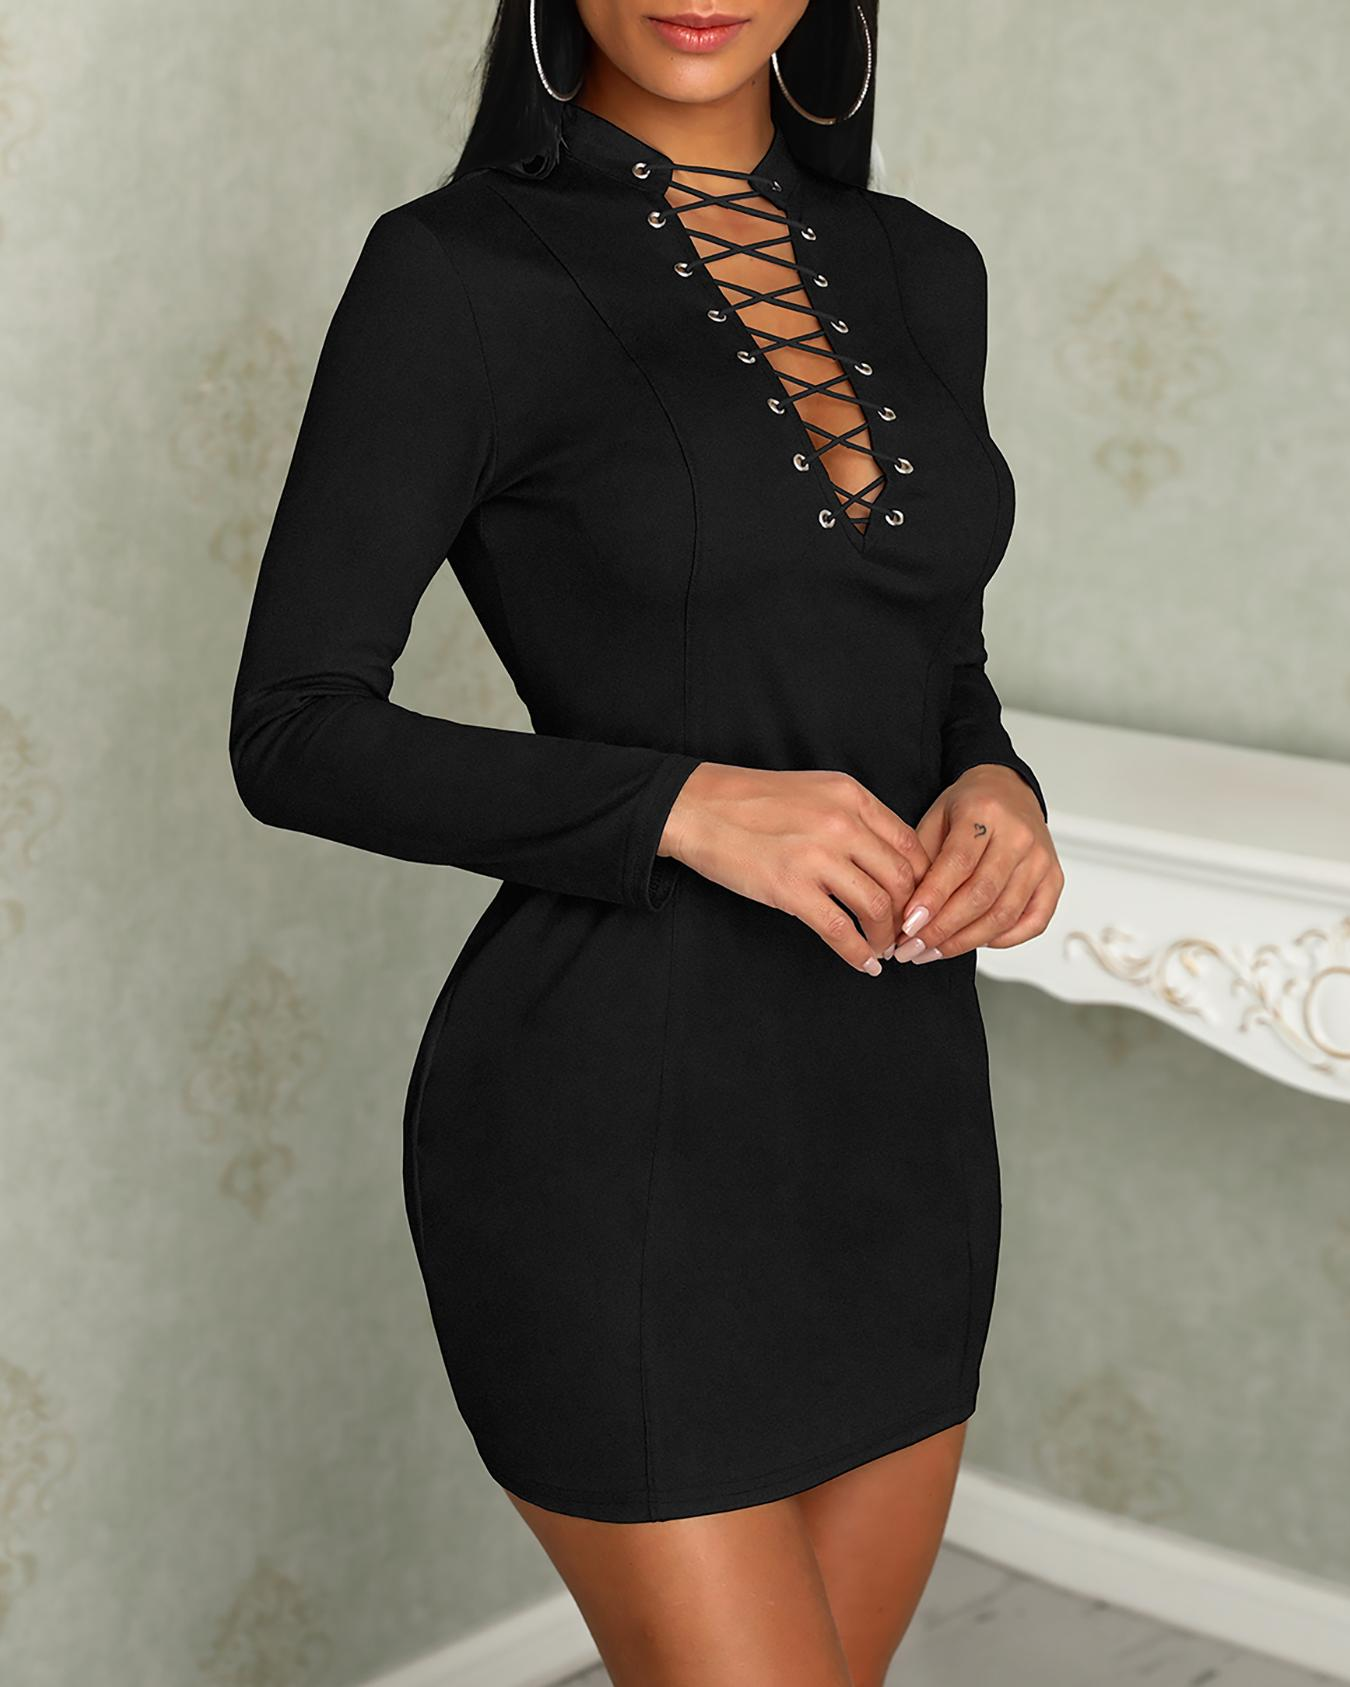 Stylish Lace-up Front Bodycon Dress